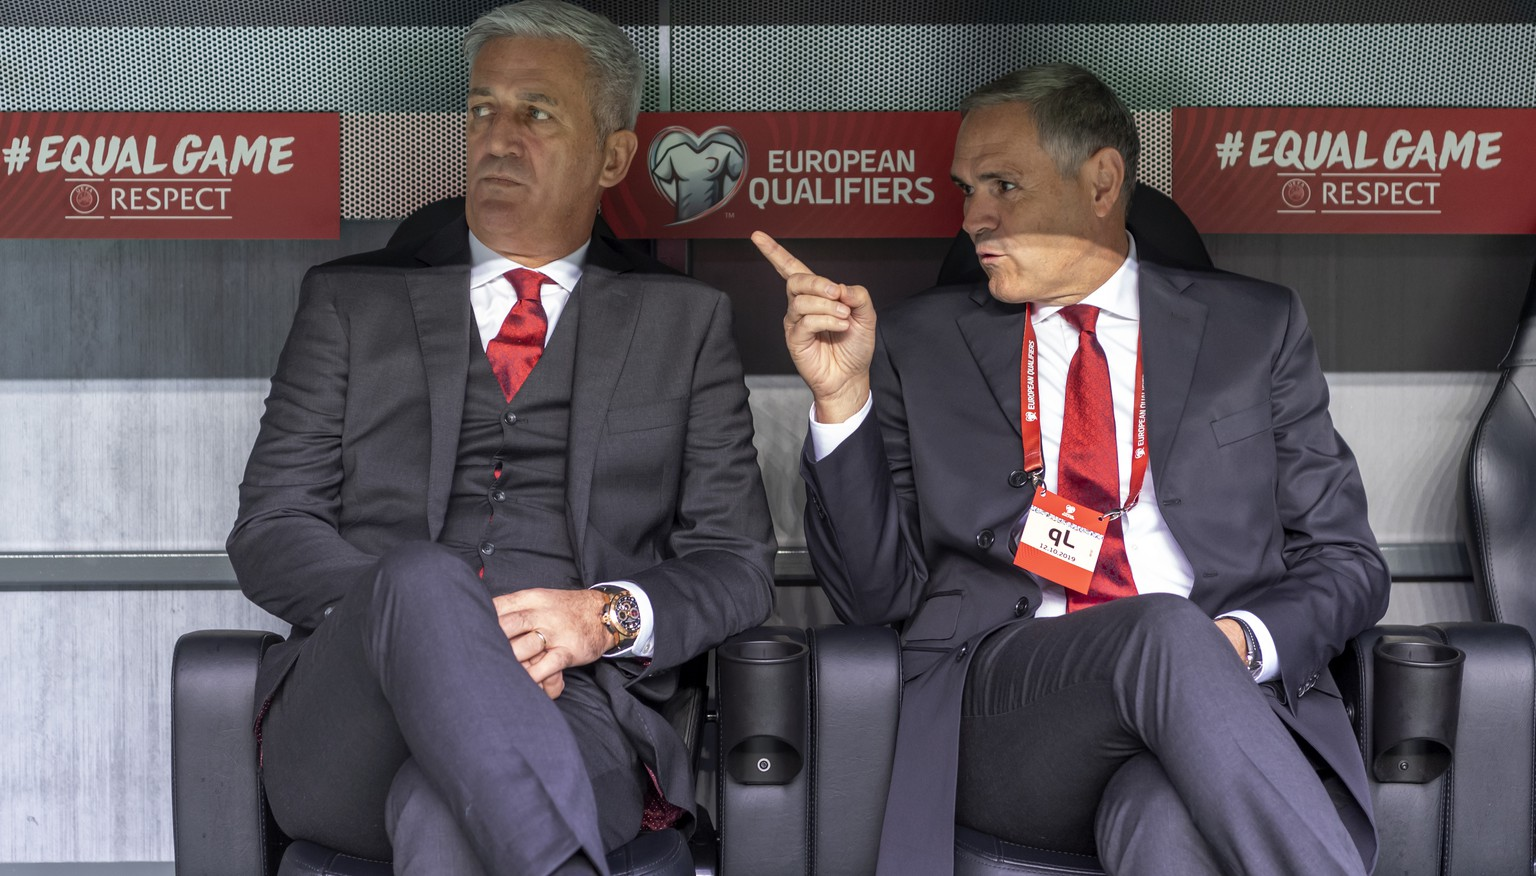 Switzerland's head coach Vladimir Petkovic, left, and Pierluigi Tami, director of the national team, right, prior to the UEFA Euro 2020 qualifying Group D soccer match between Denmark and Switzerland at the Telia Parken stadium in Kopenhagen, Denmark, on Saturday, October 12, 2019. (KEYSTONE/Georgios Kefalas)